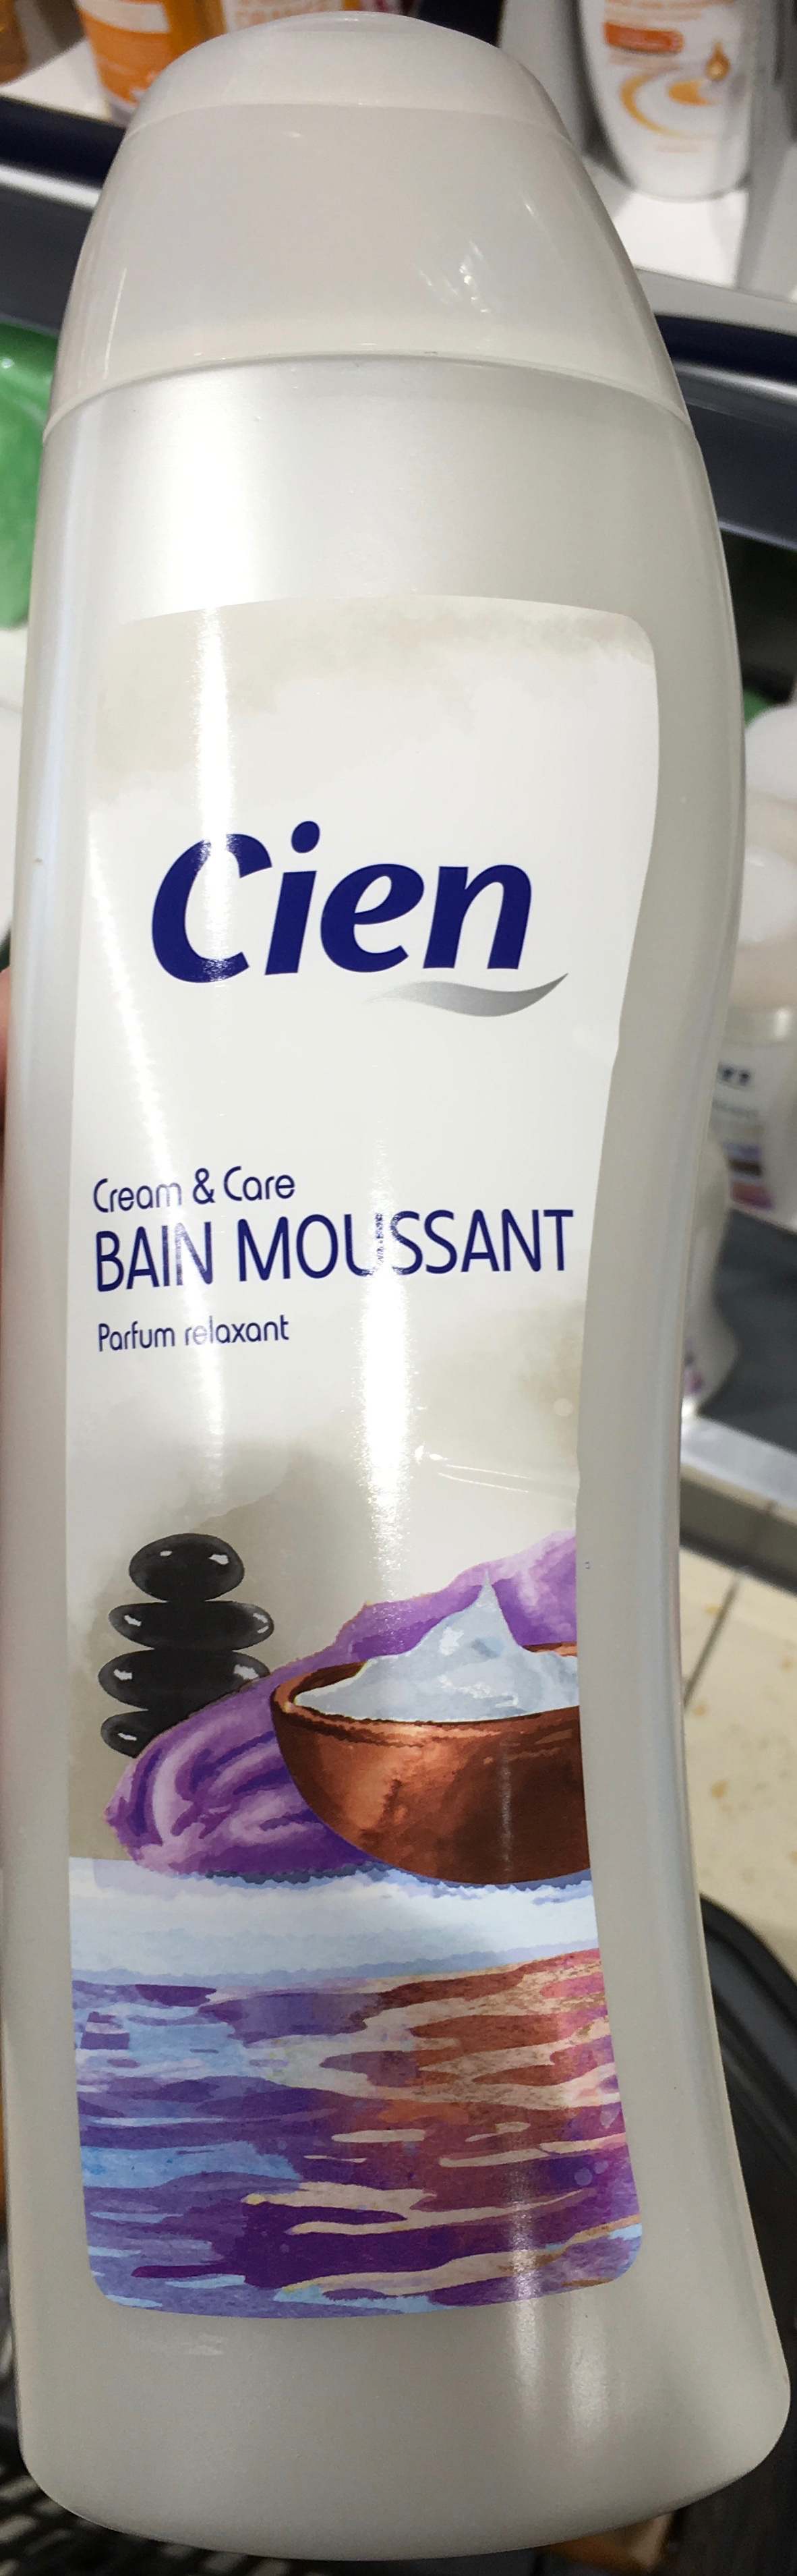 Bon Photo De Bain Moussant #8: Cream U0026 Care Bain Moussant - Product